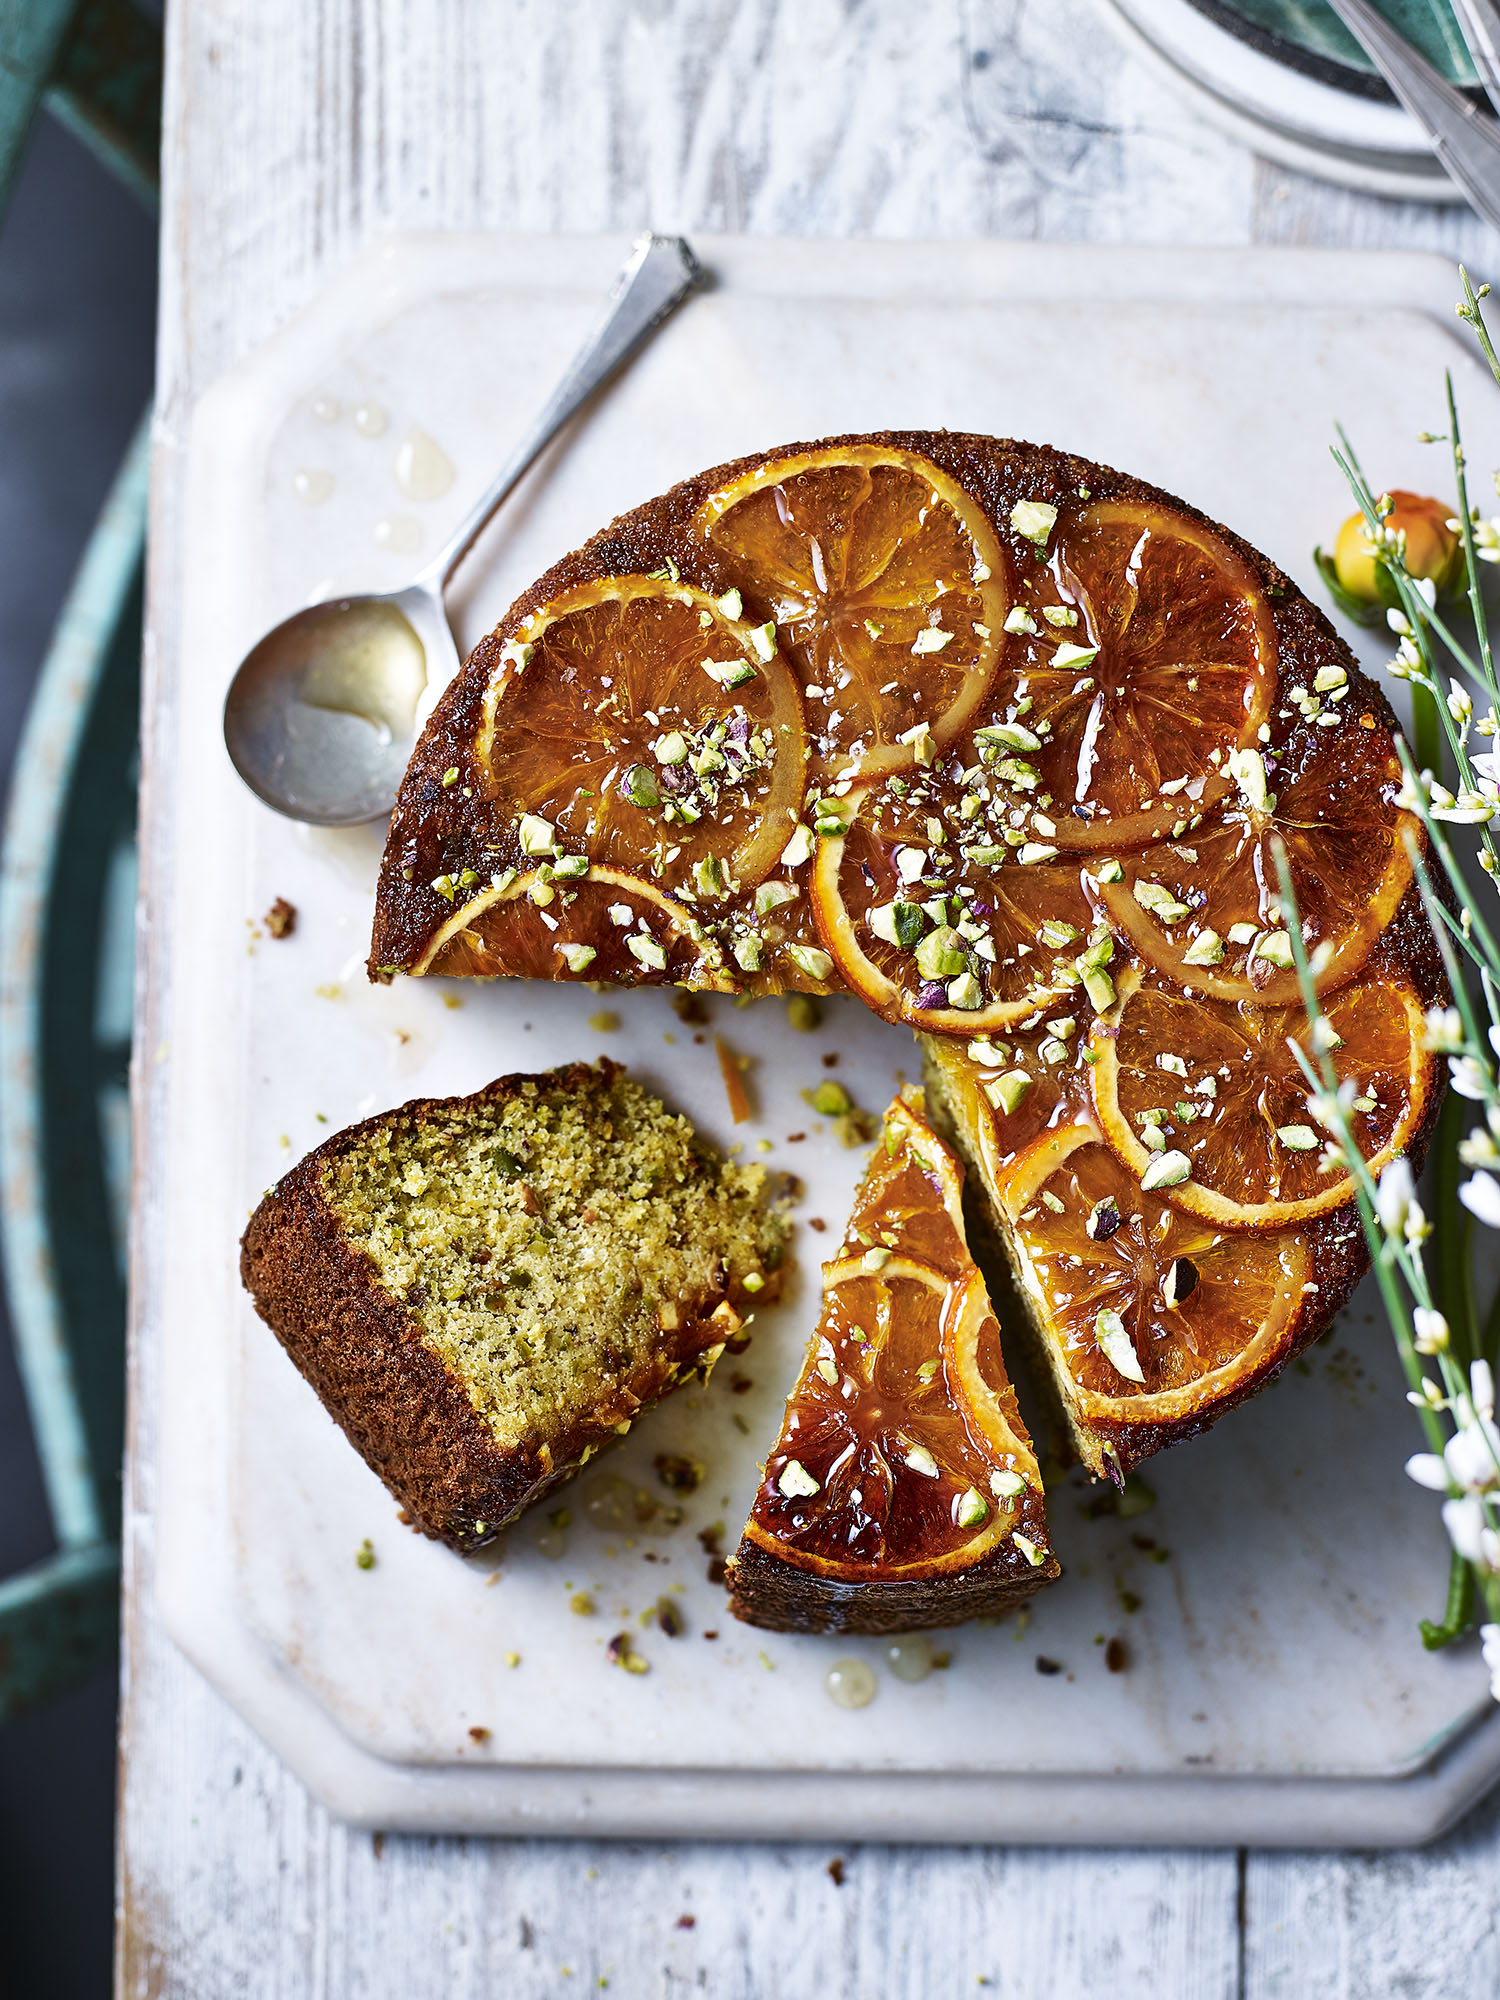 Orange and Pistachio Cake Photograph Toby Scott Prop Styling Davina Perkins Recipe Lizzie Fox